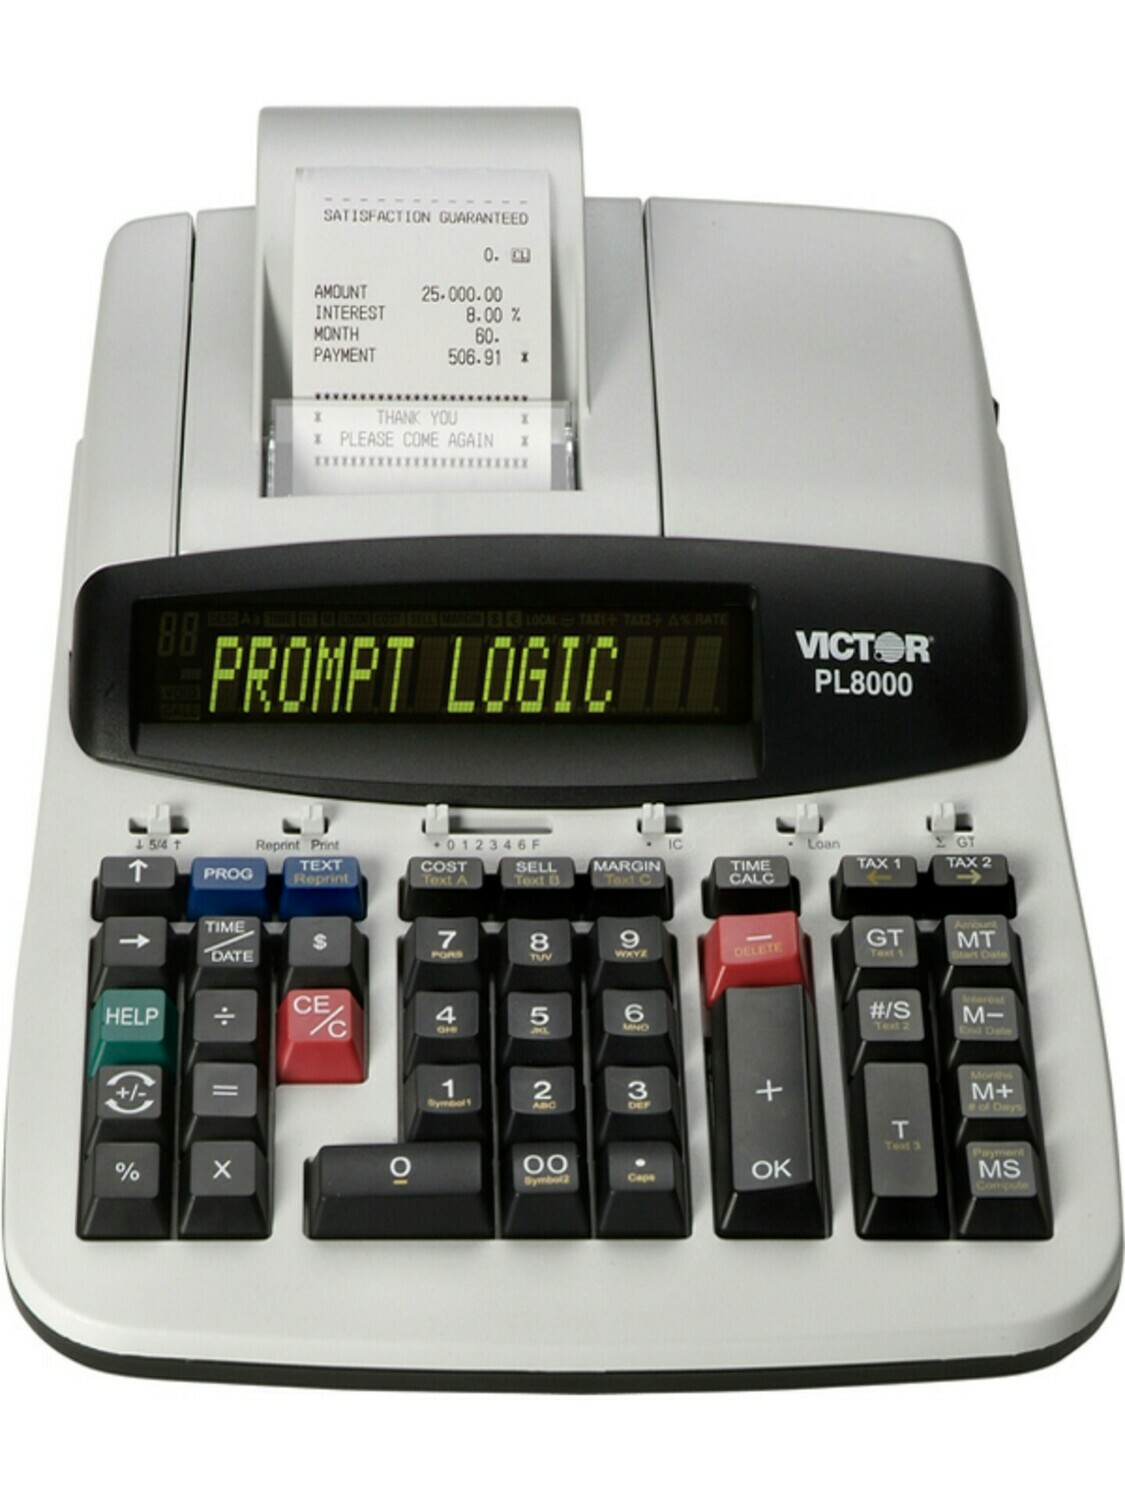 Victor Technology / 14 Digit Heavy Duty Commercial Priting Calculator with Prompt Logic™